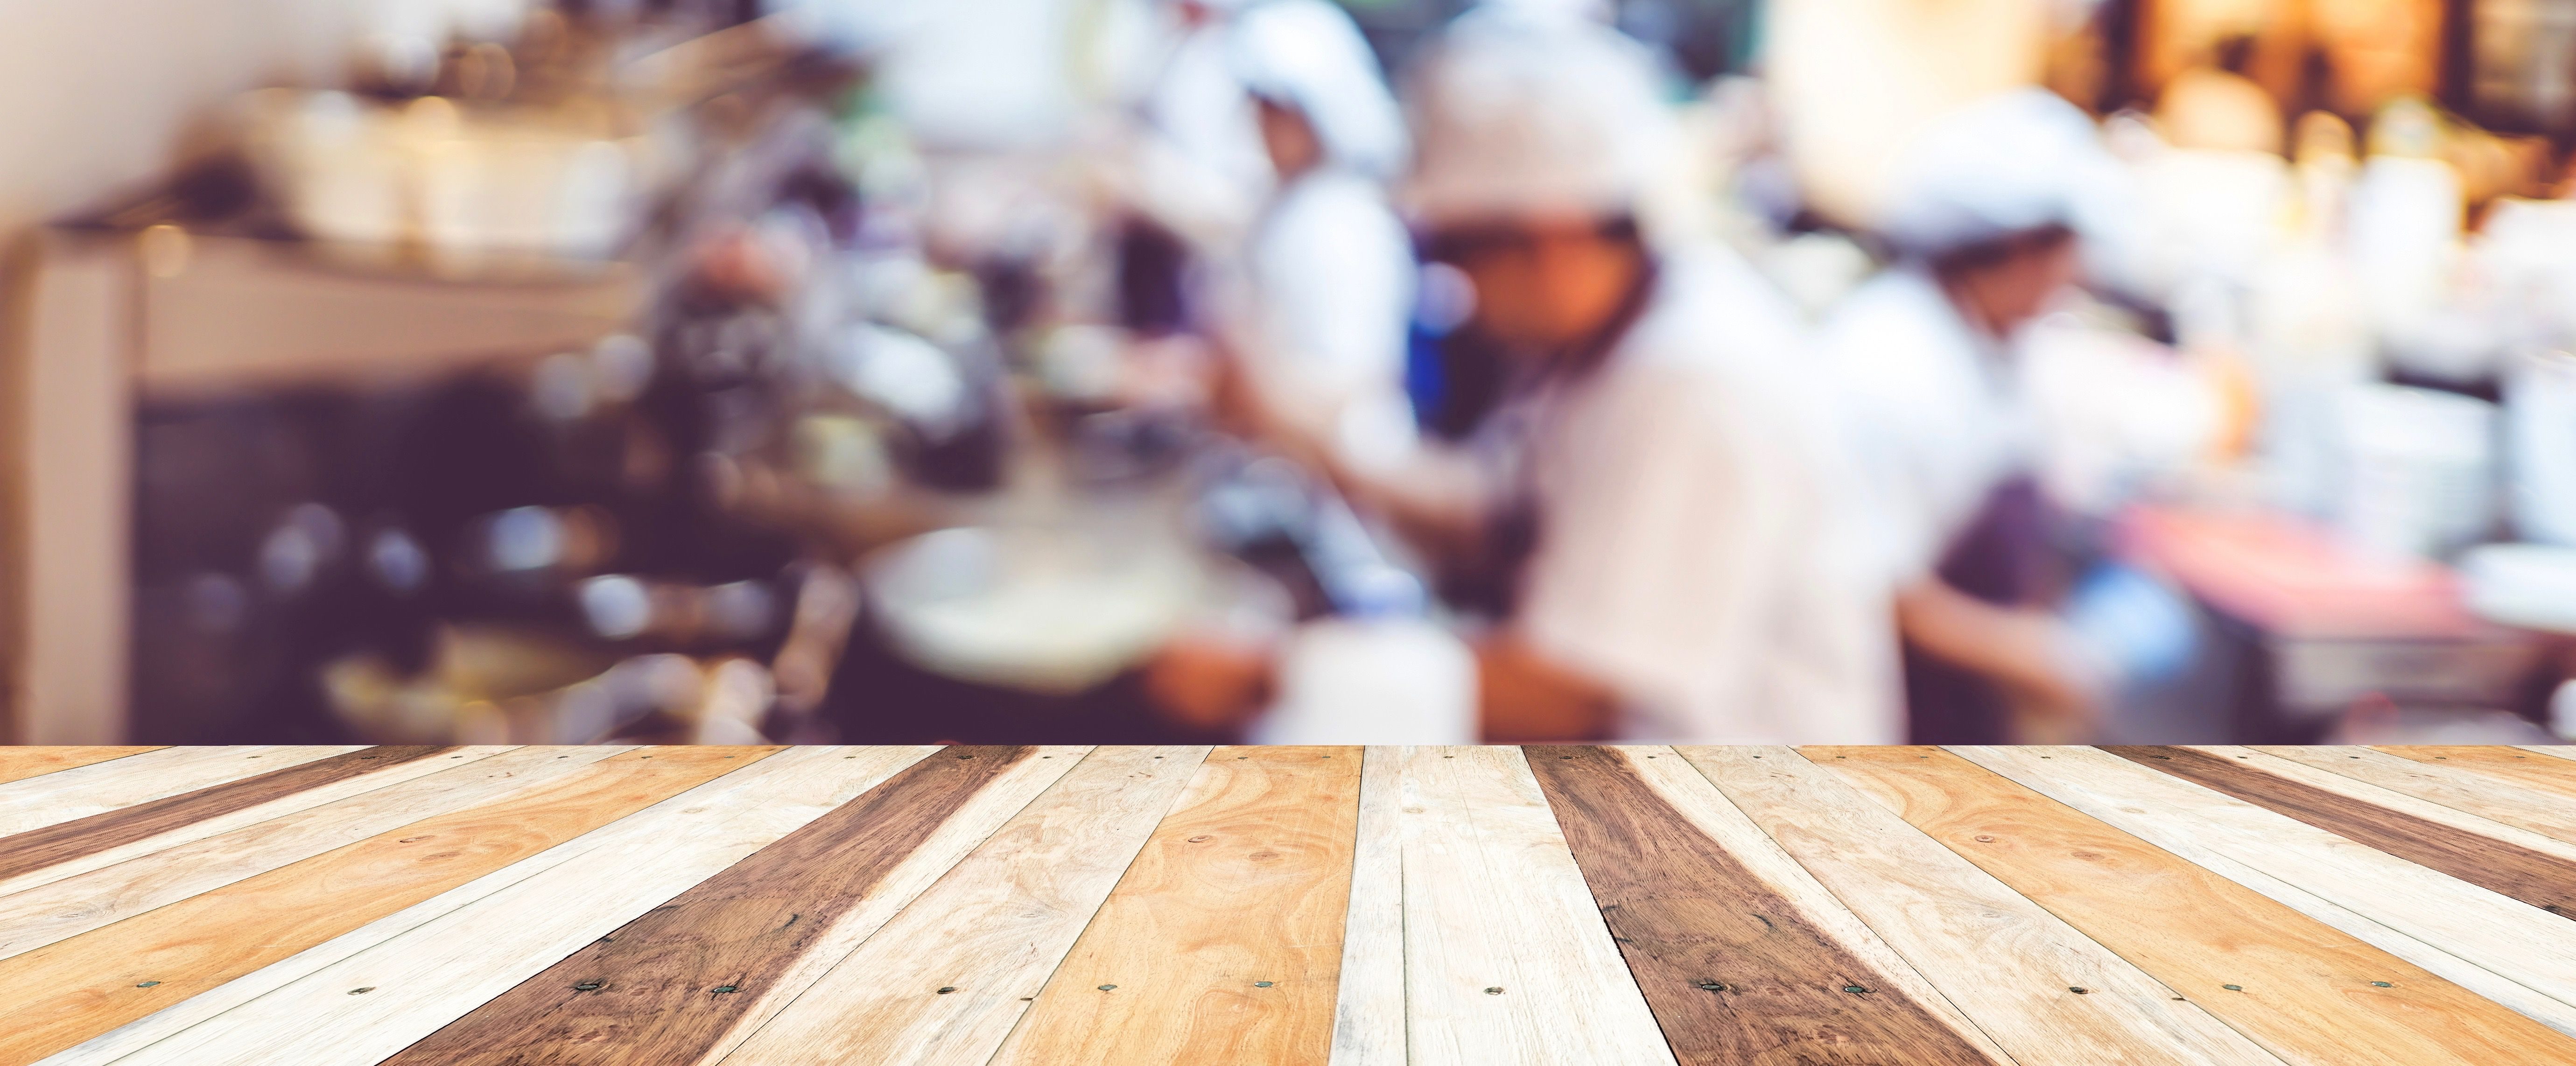 What Can Your Business Learn From Restaurant Marketing? [Infographic]